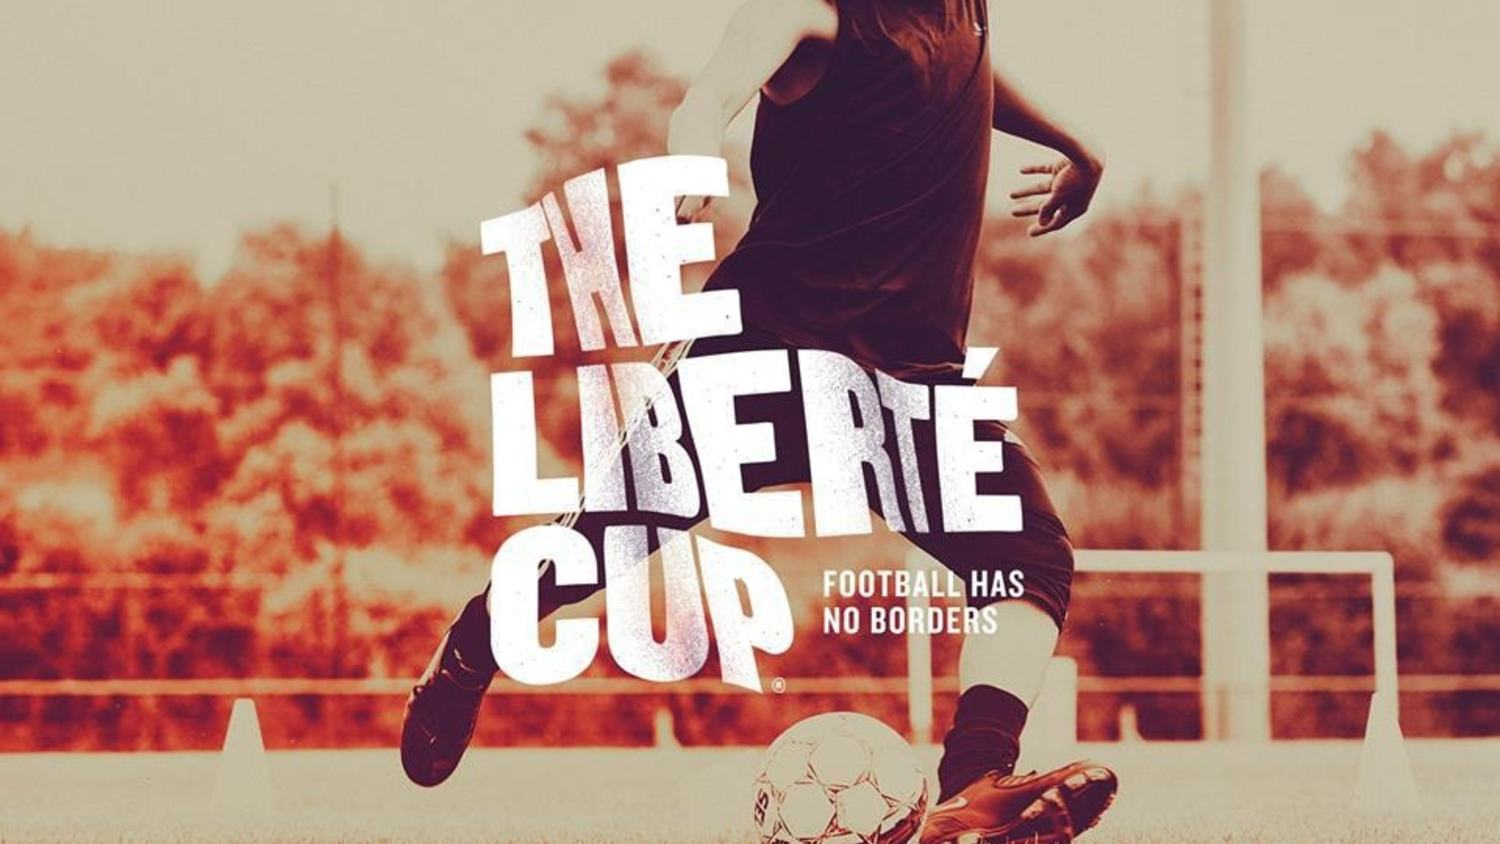 Forget the Politics, Let's Play: Welcome to the Liberté Cup